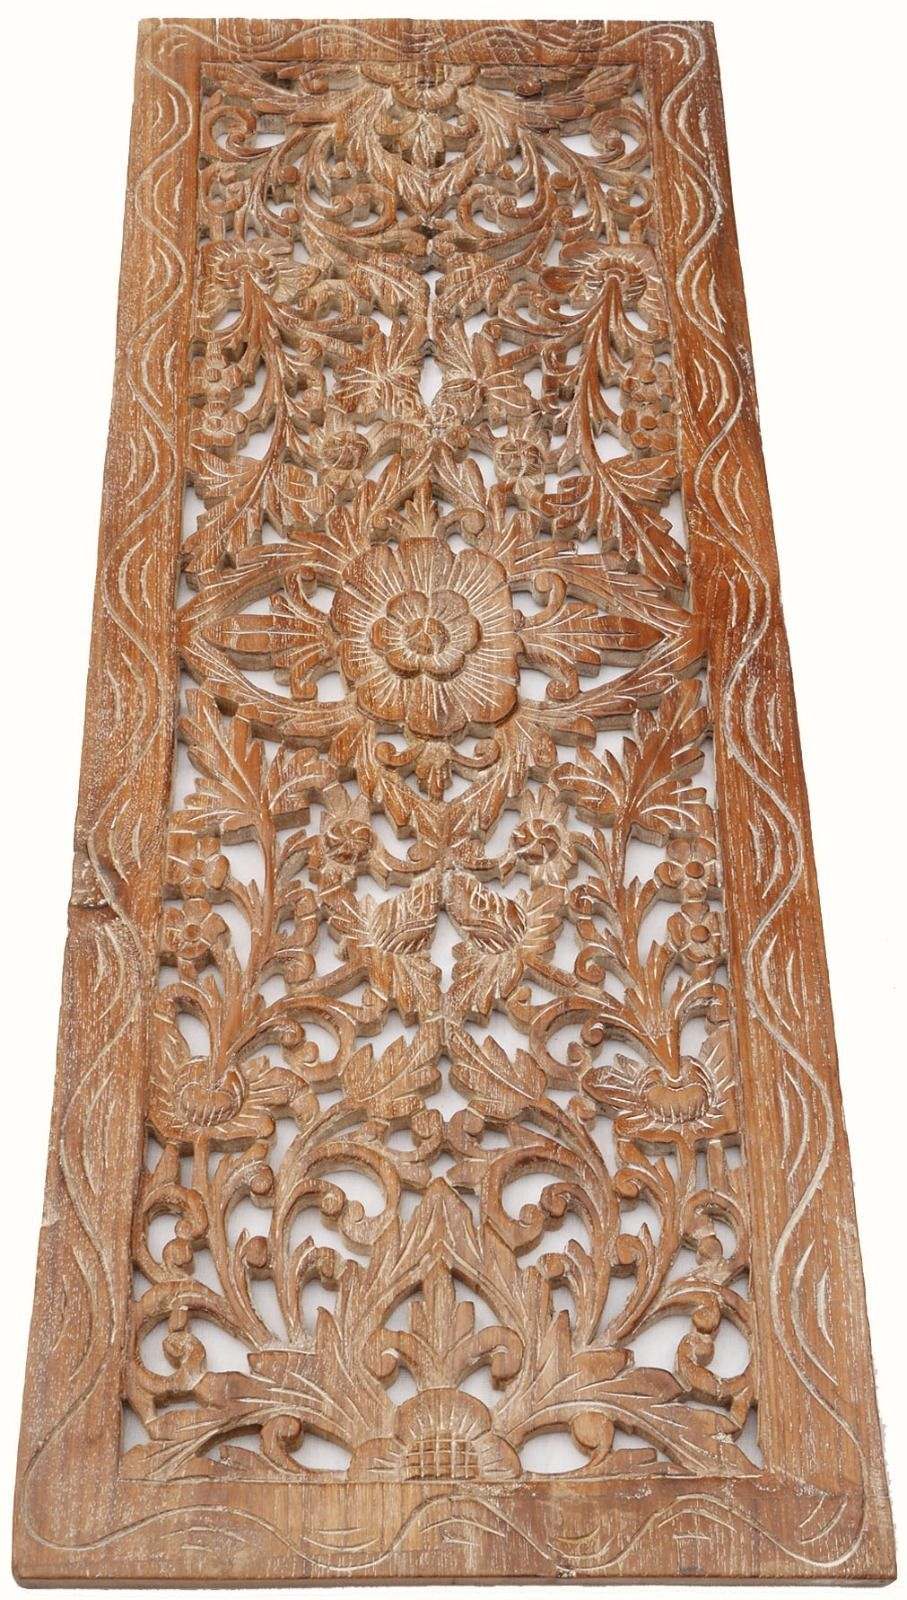 Details About Asian Carved Wood Wall Decor Plaque Floral Wood Wall